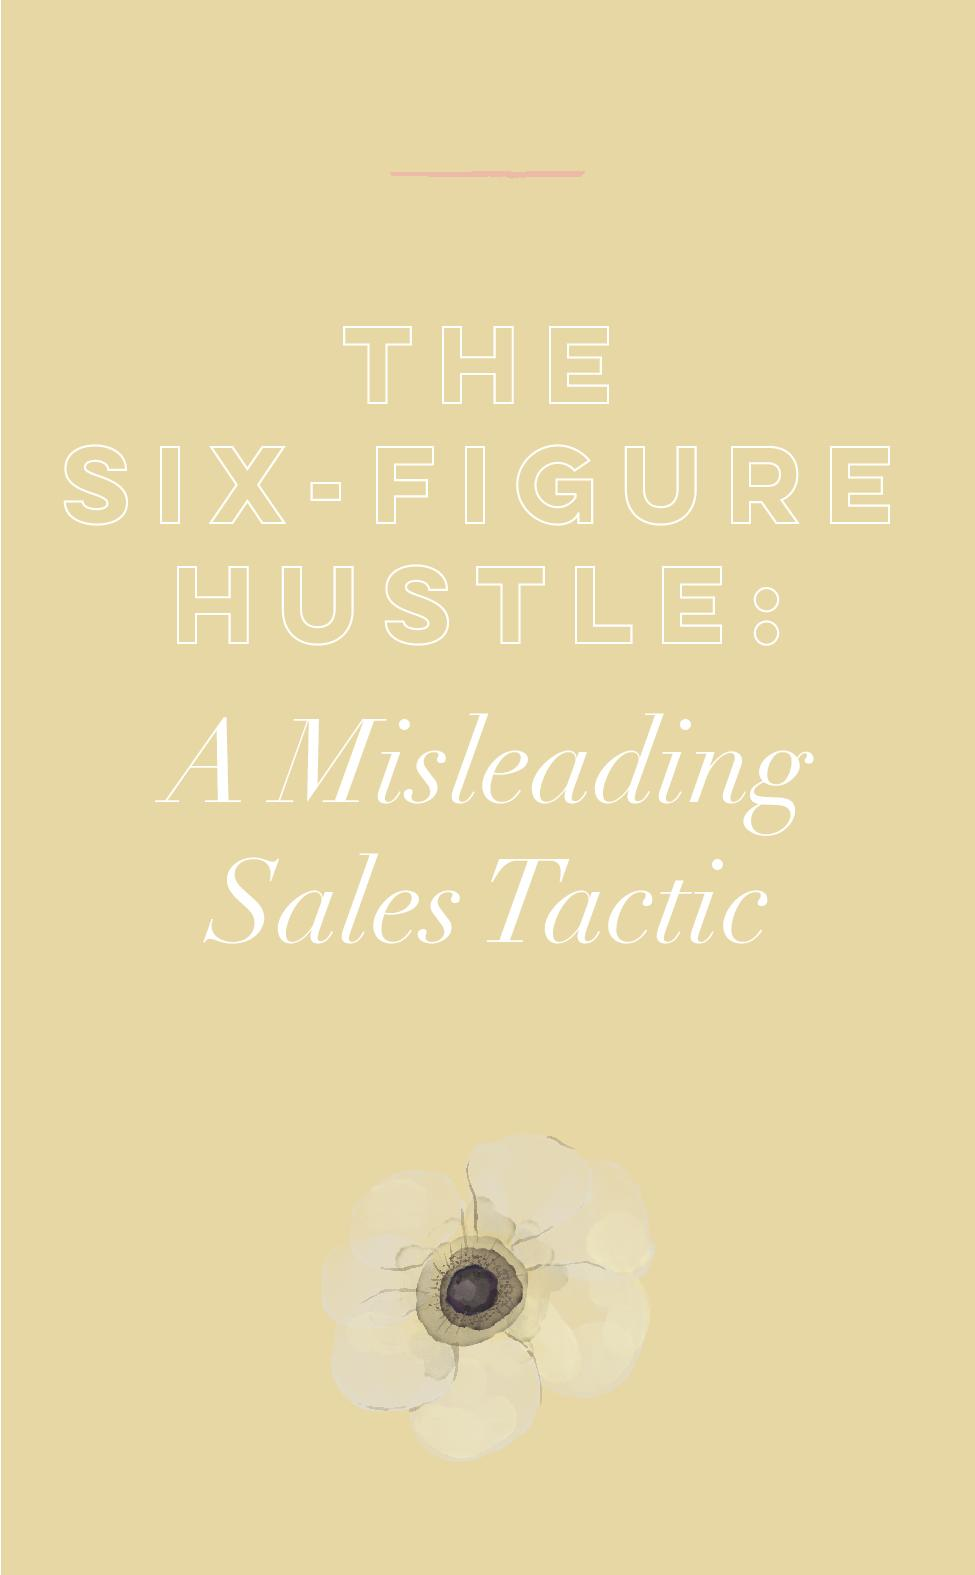 The Six-Figure Hustle - A Misleading Sales Tactic.jpg